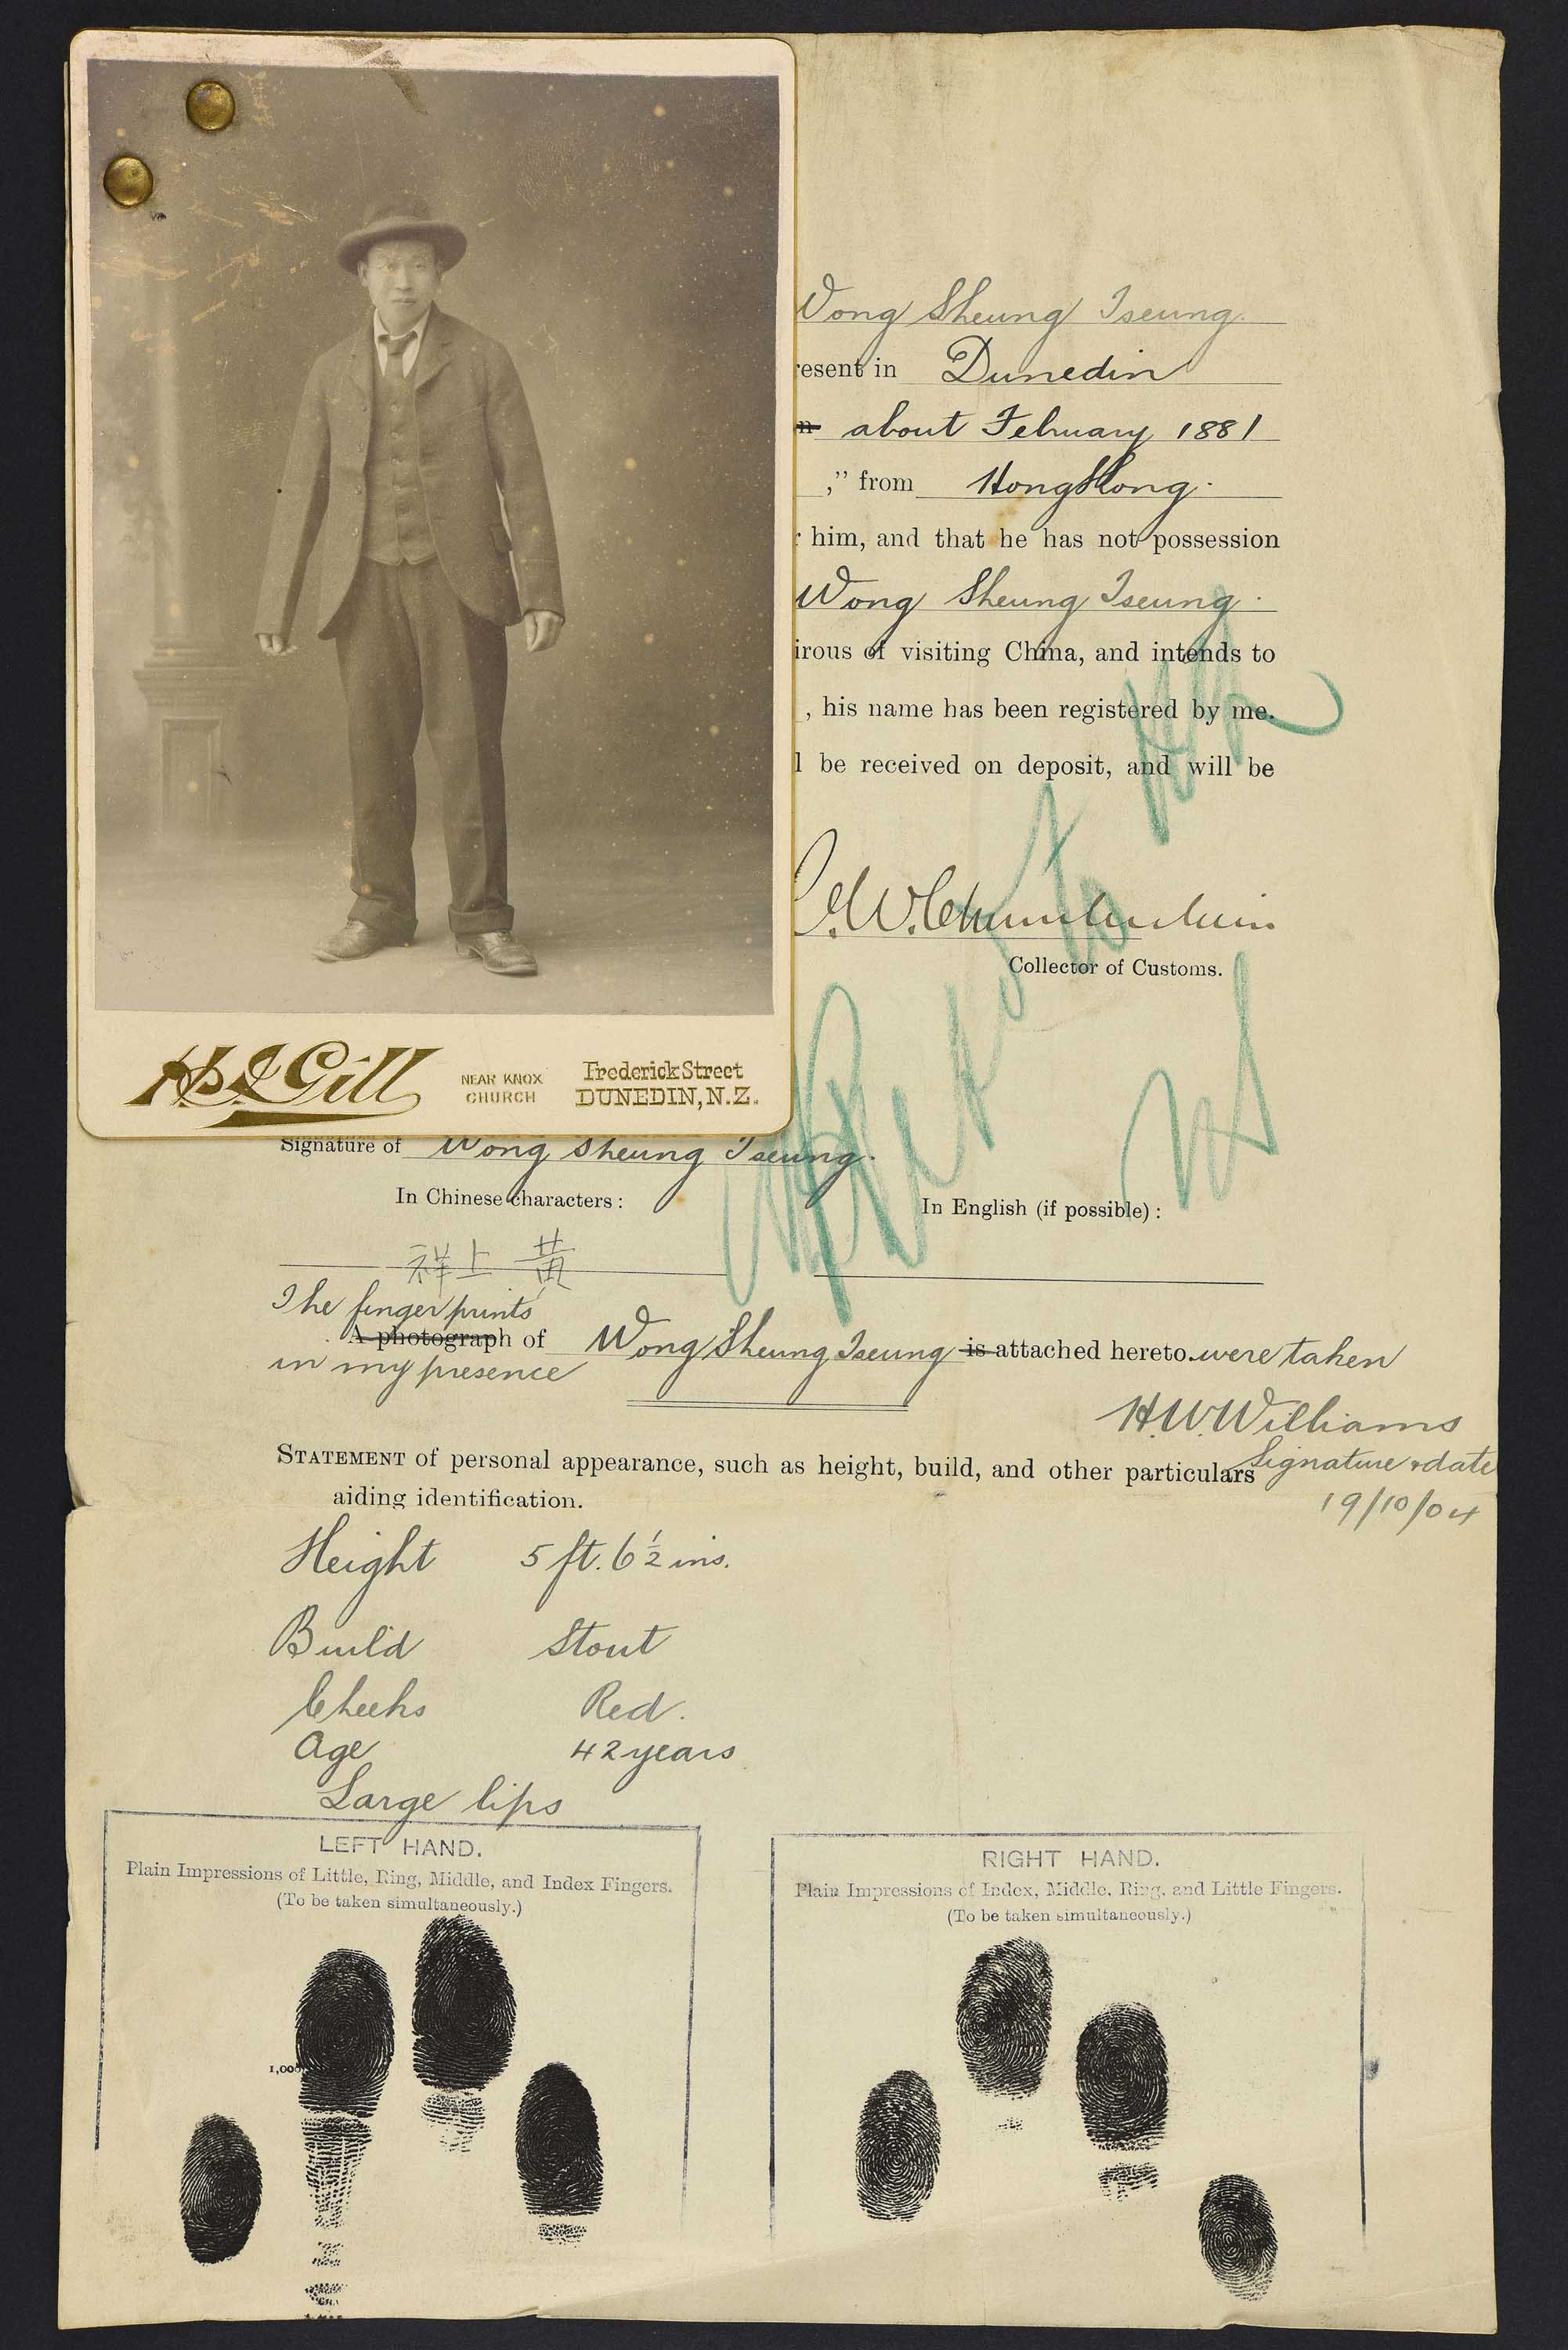 Sepia photo portrait of a standing Chinese man pinned to his immigration papers